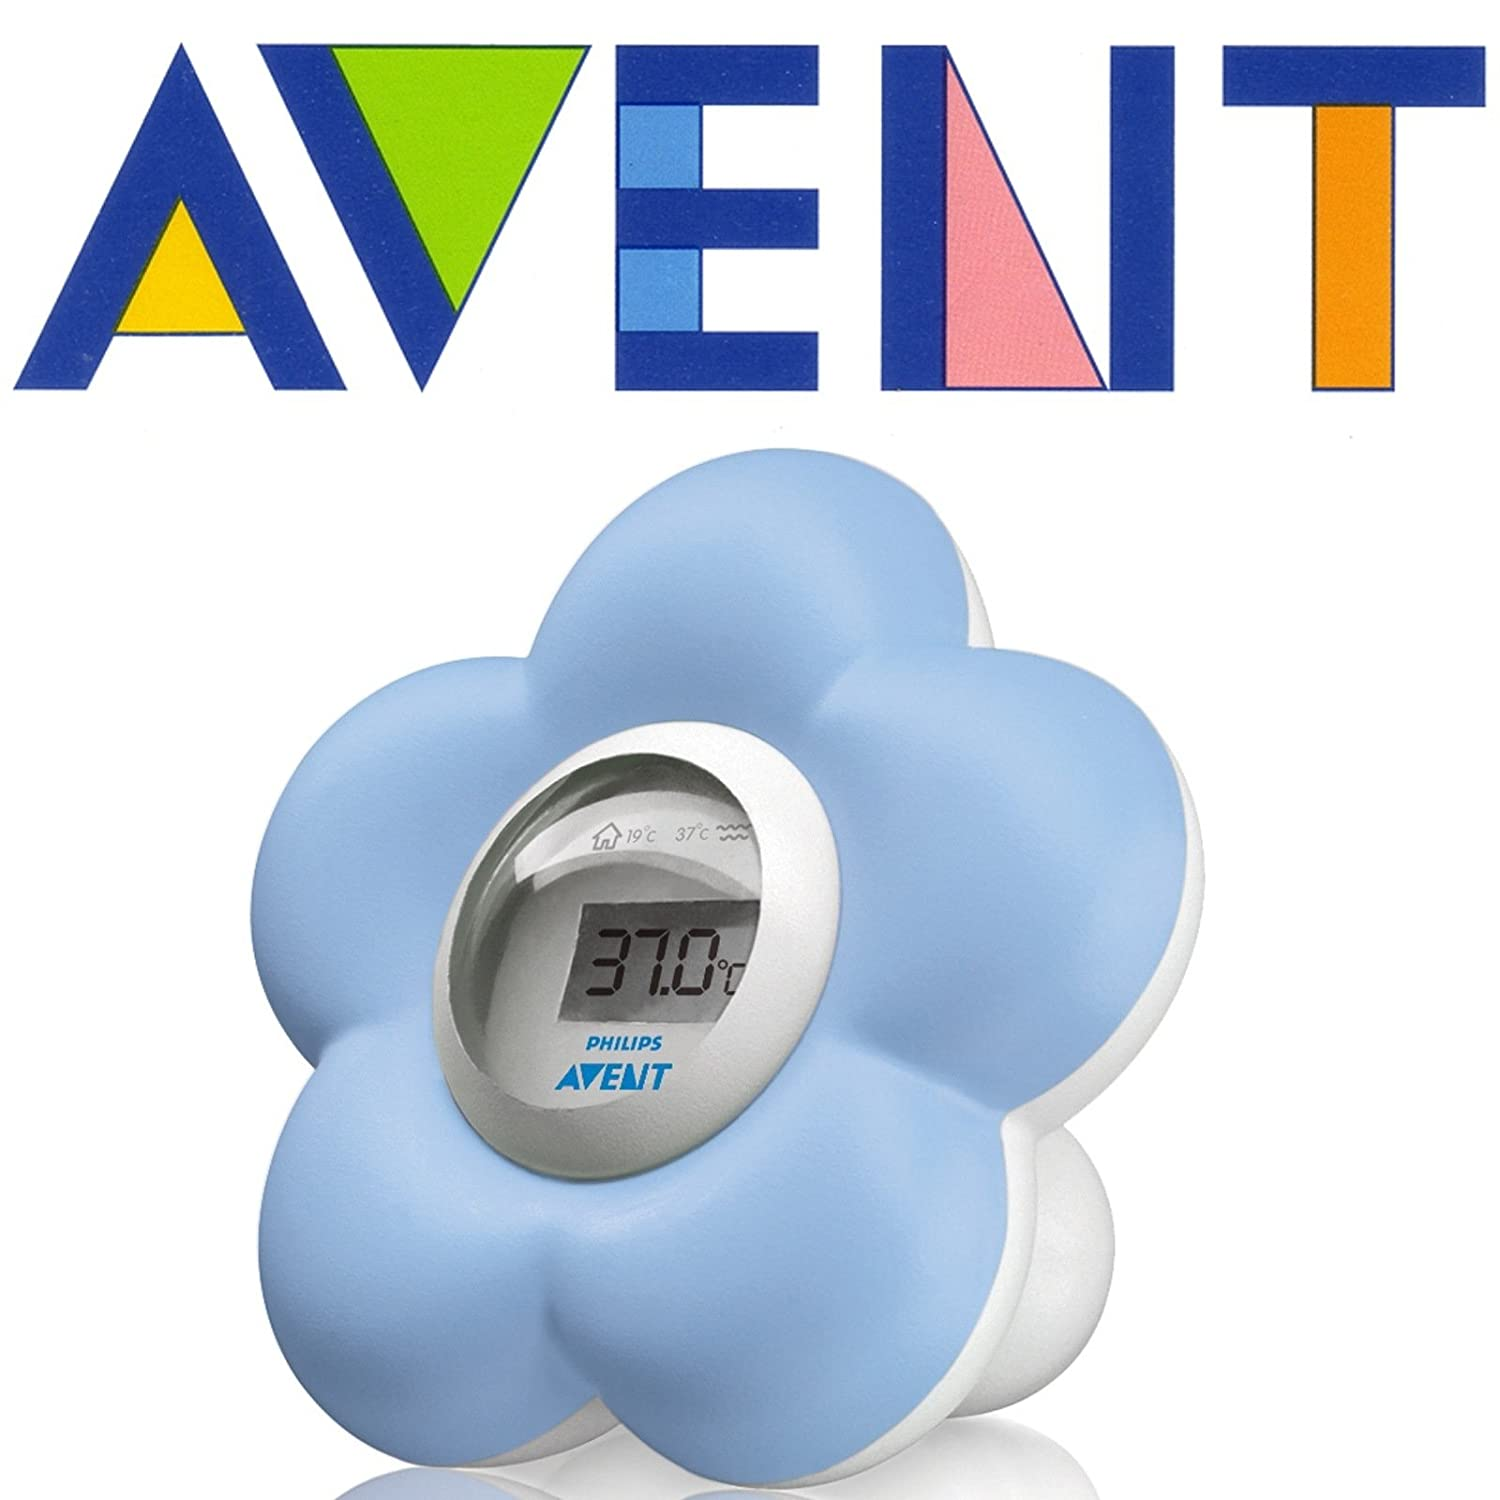 Amazon.com: Philips Avent Digital Baby Bath and Room Thermometer Scf550/20 High Quality Best Seller Fast Shipping Ship Worldwide From Heng Heng Shop: Health ...